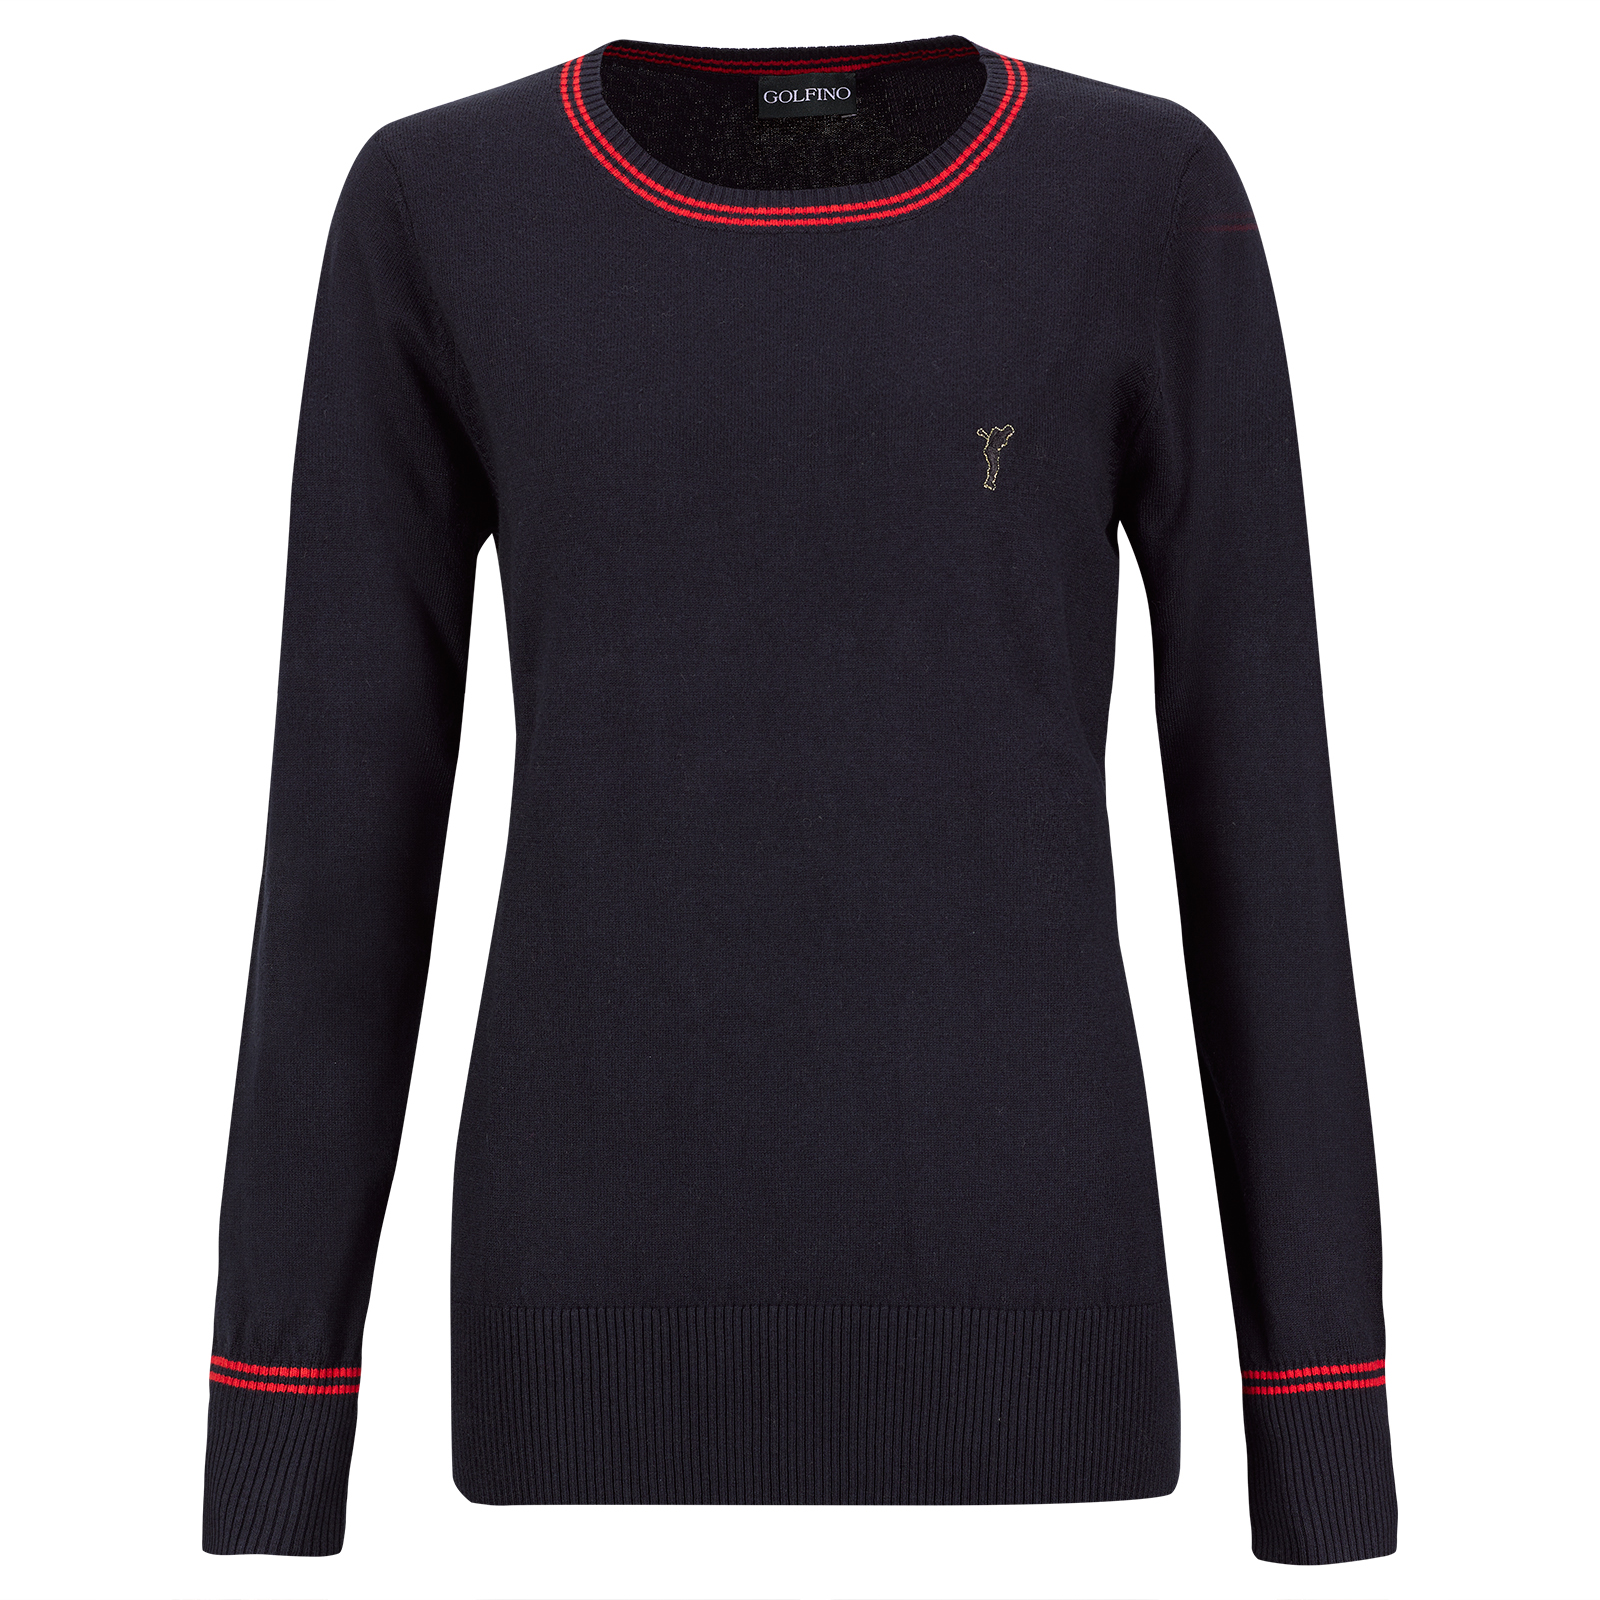 Ladies' crew neck pullover made from finest cotton/cashmere